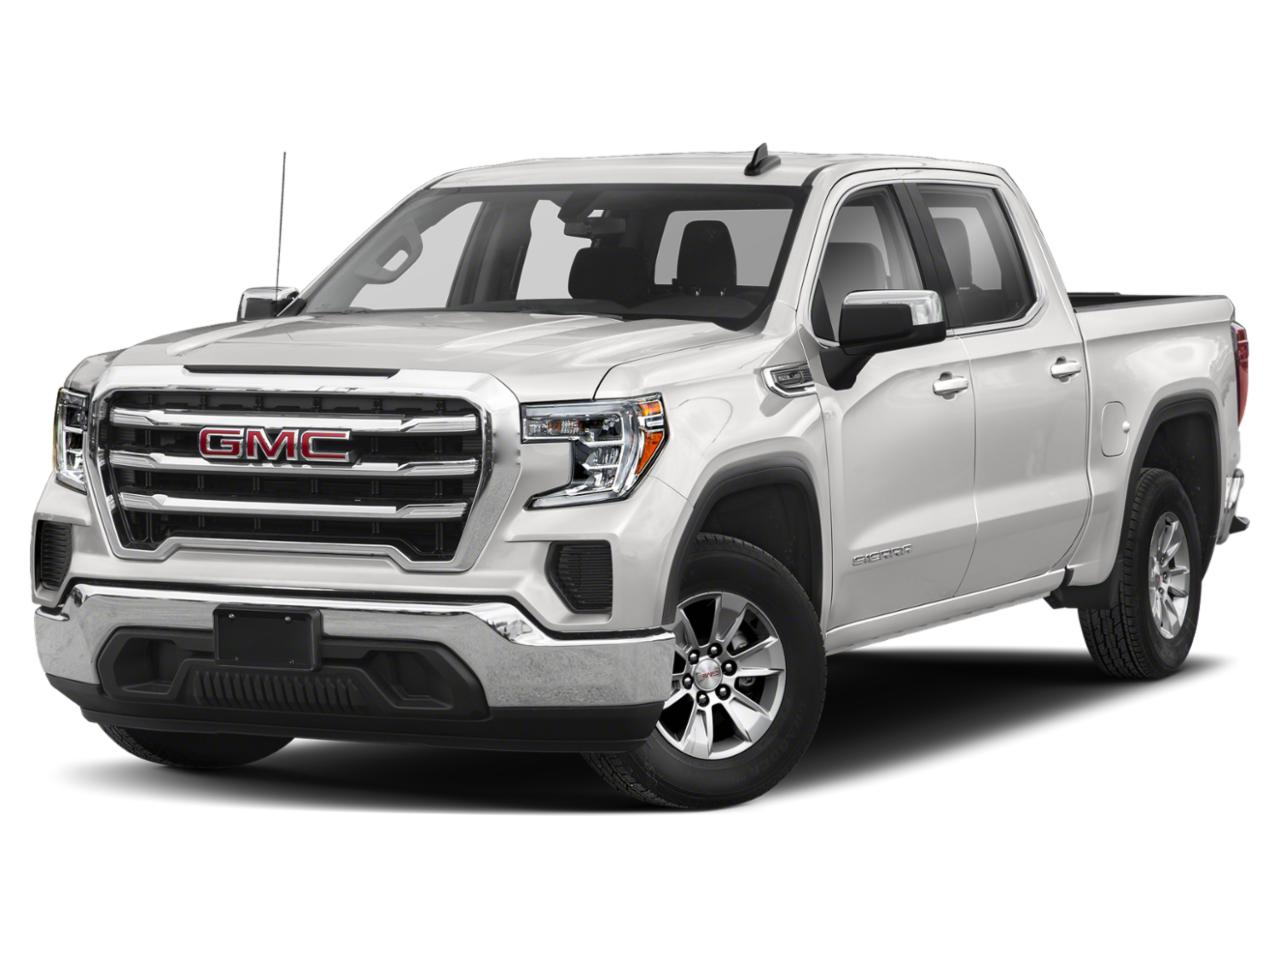 2021 GMC Sierra 1500 Vehicle Photo in Washington, NJ 07882